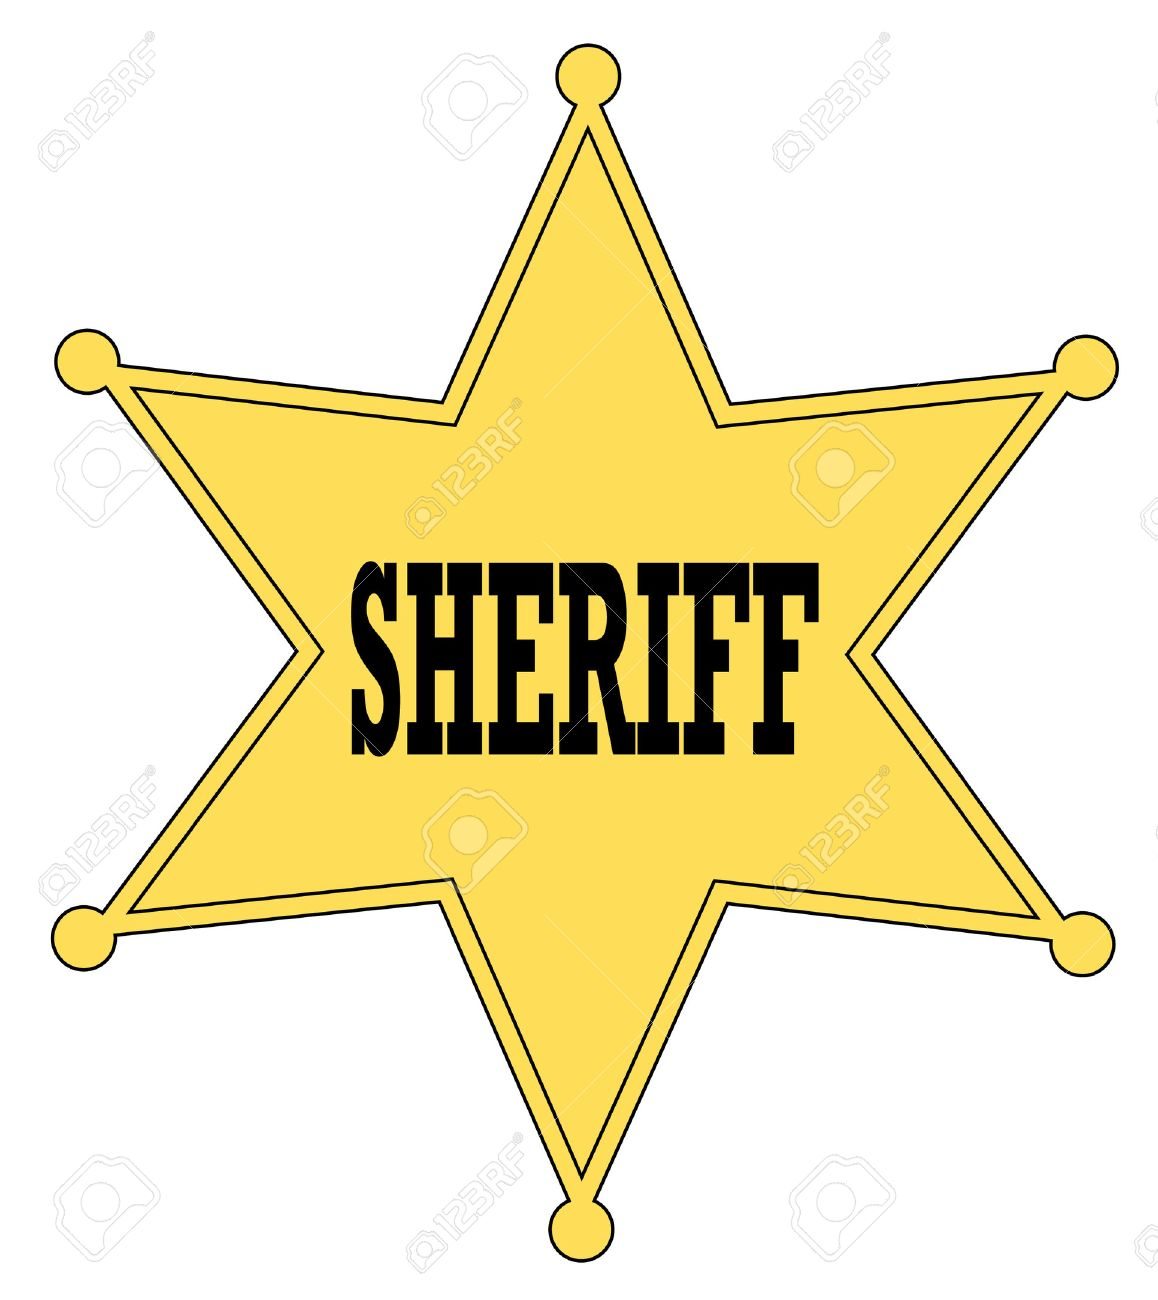 gold star sheriff badge from the old west.